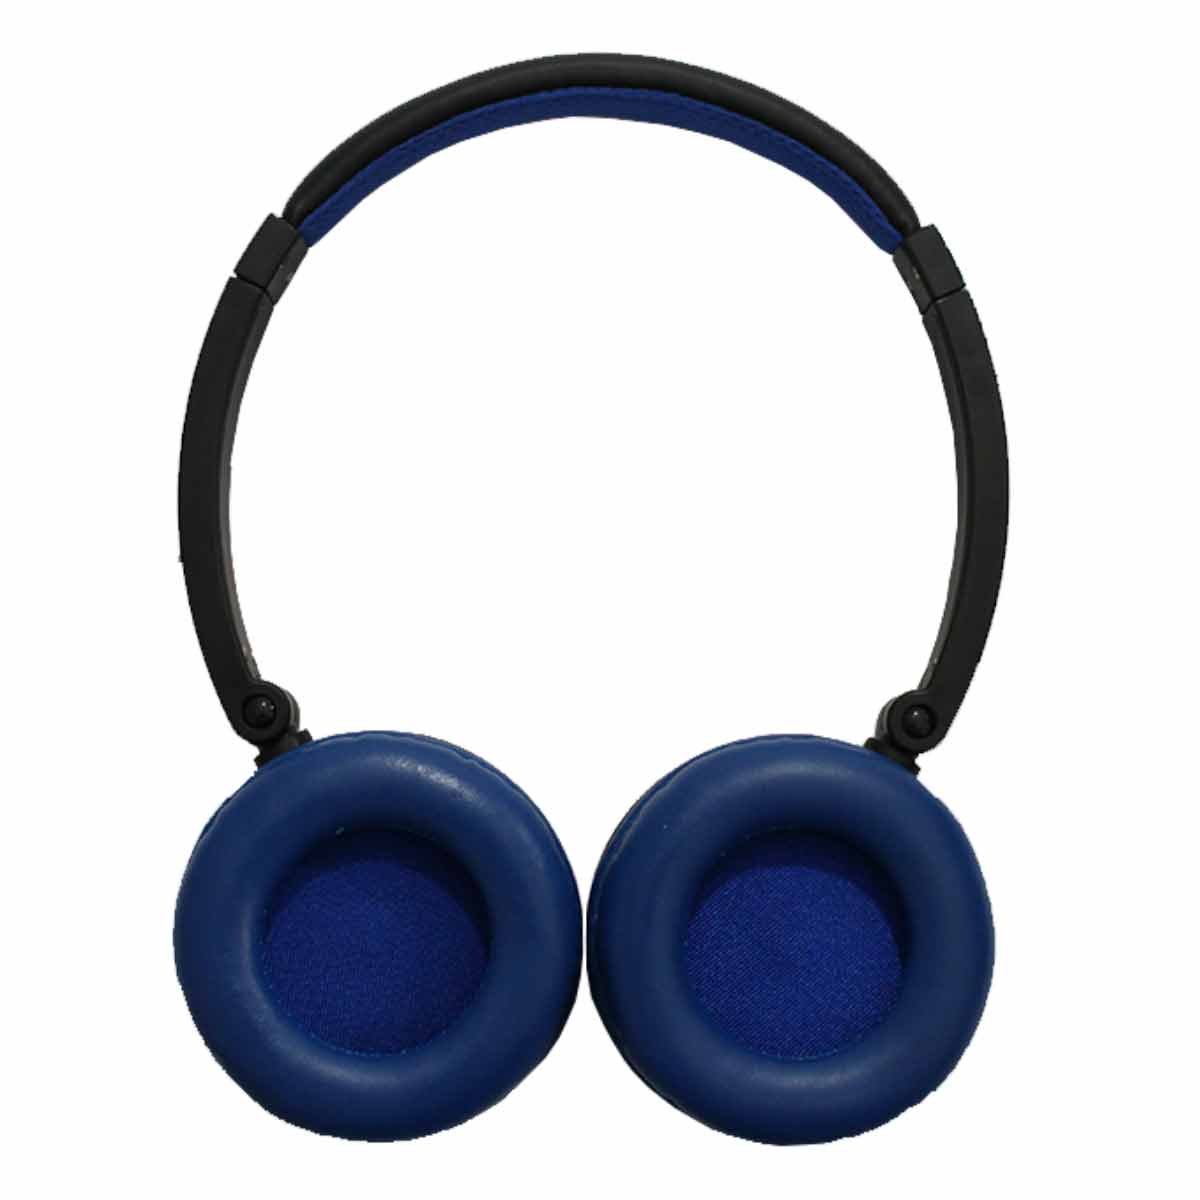 CD46 - Fone de Ouvido On-ear CD 46 Azul - YOGA